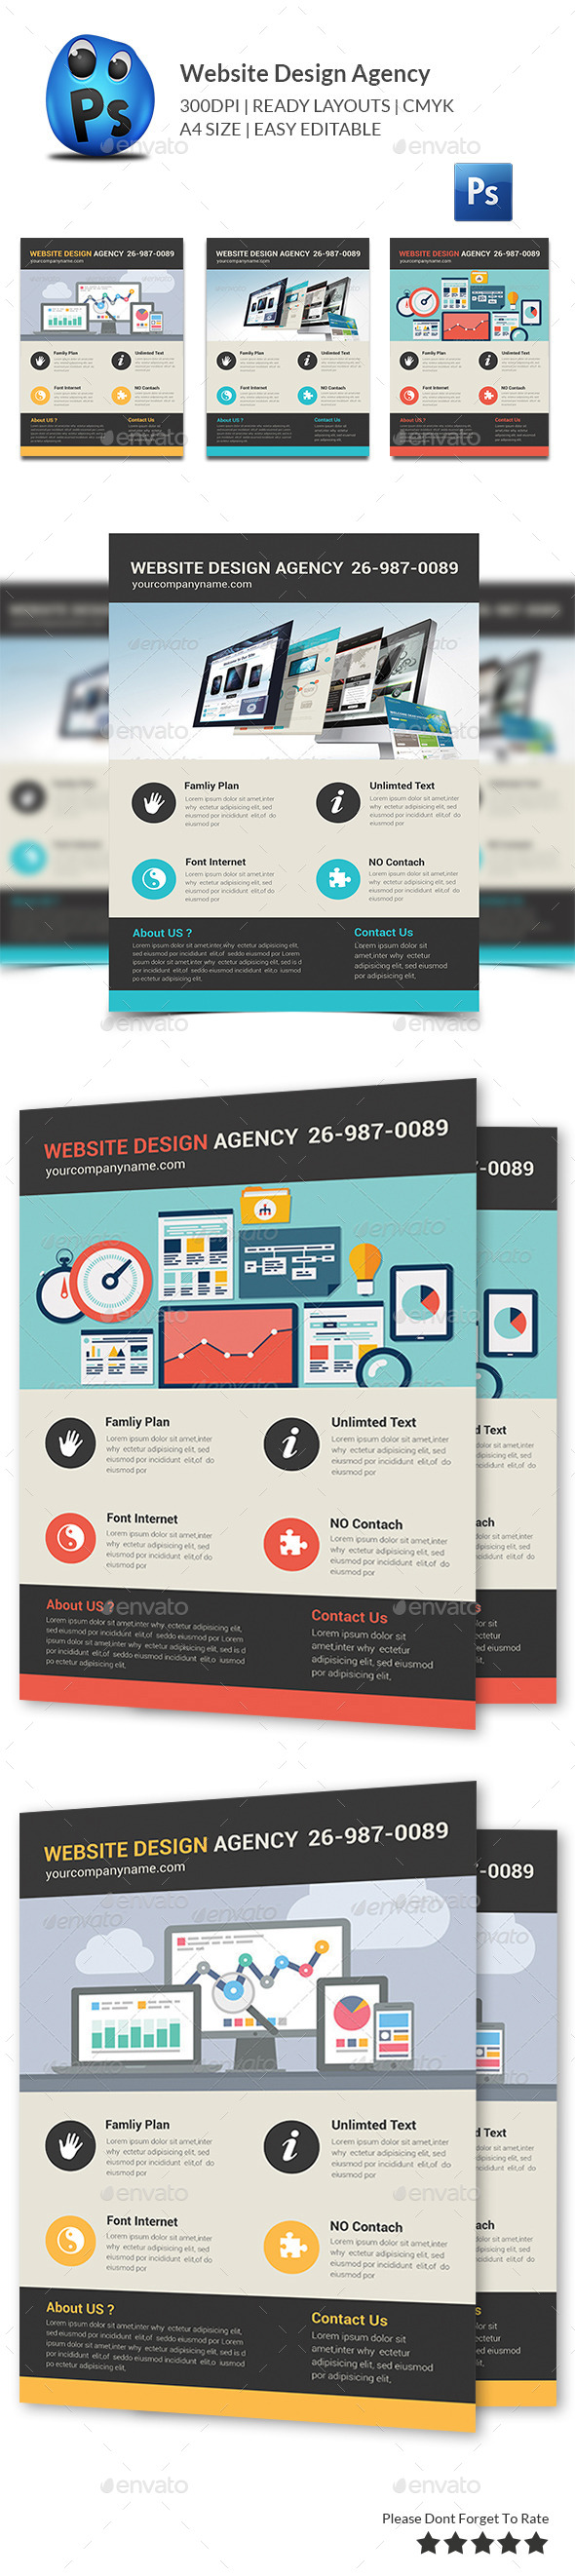 GraphicRiver Website Design Agency Flyer 10357659